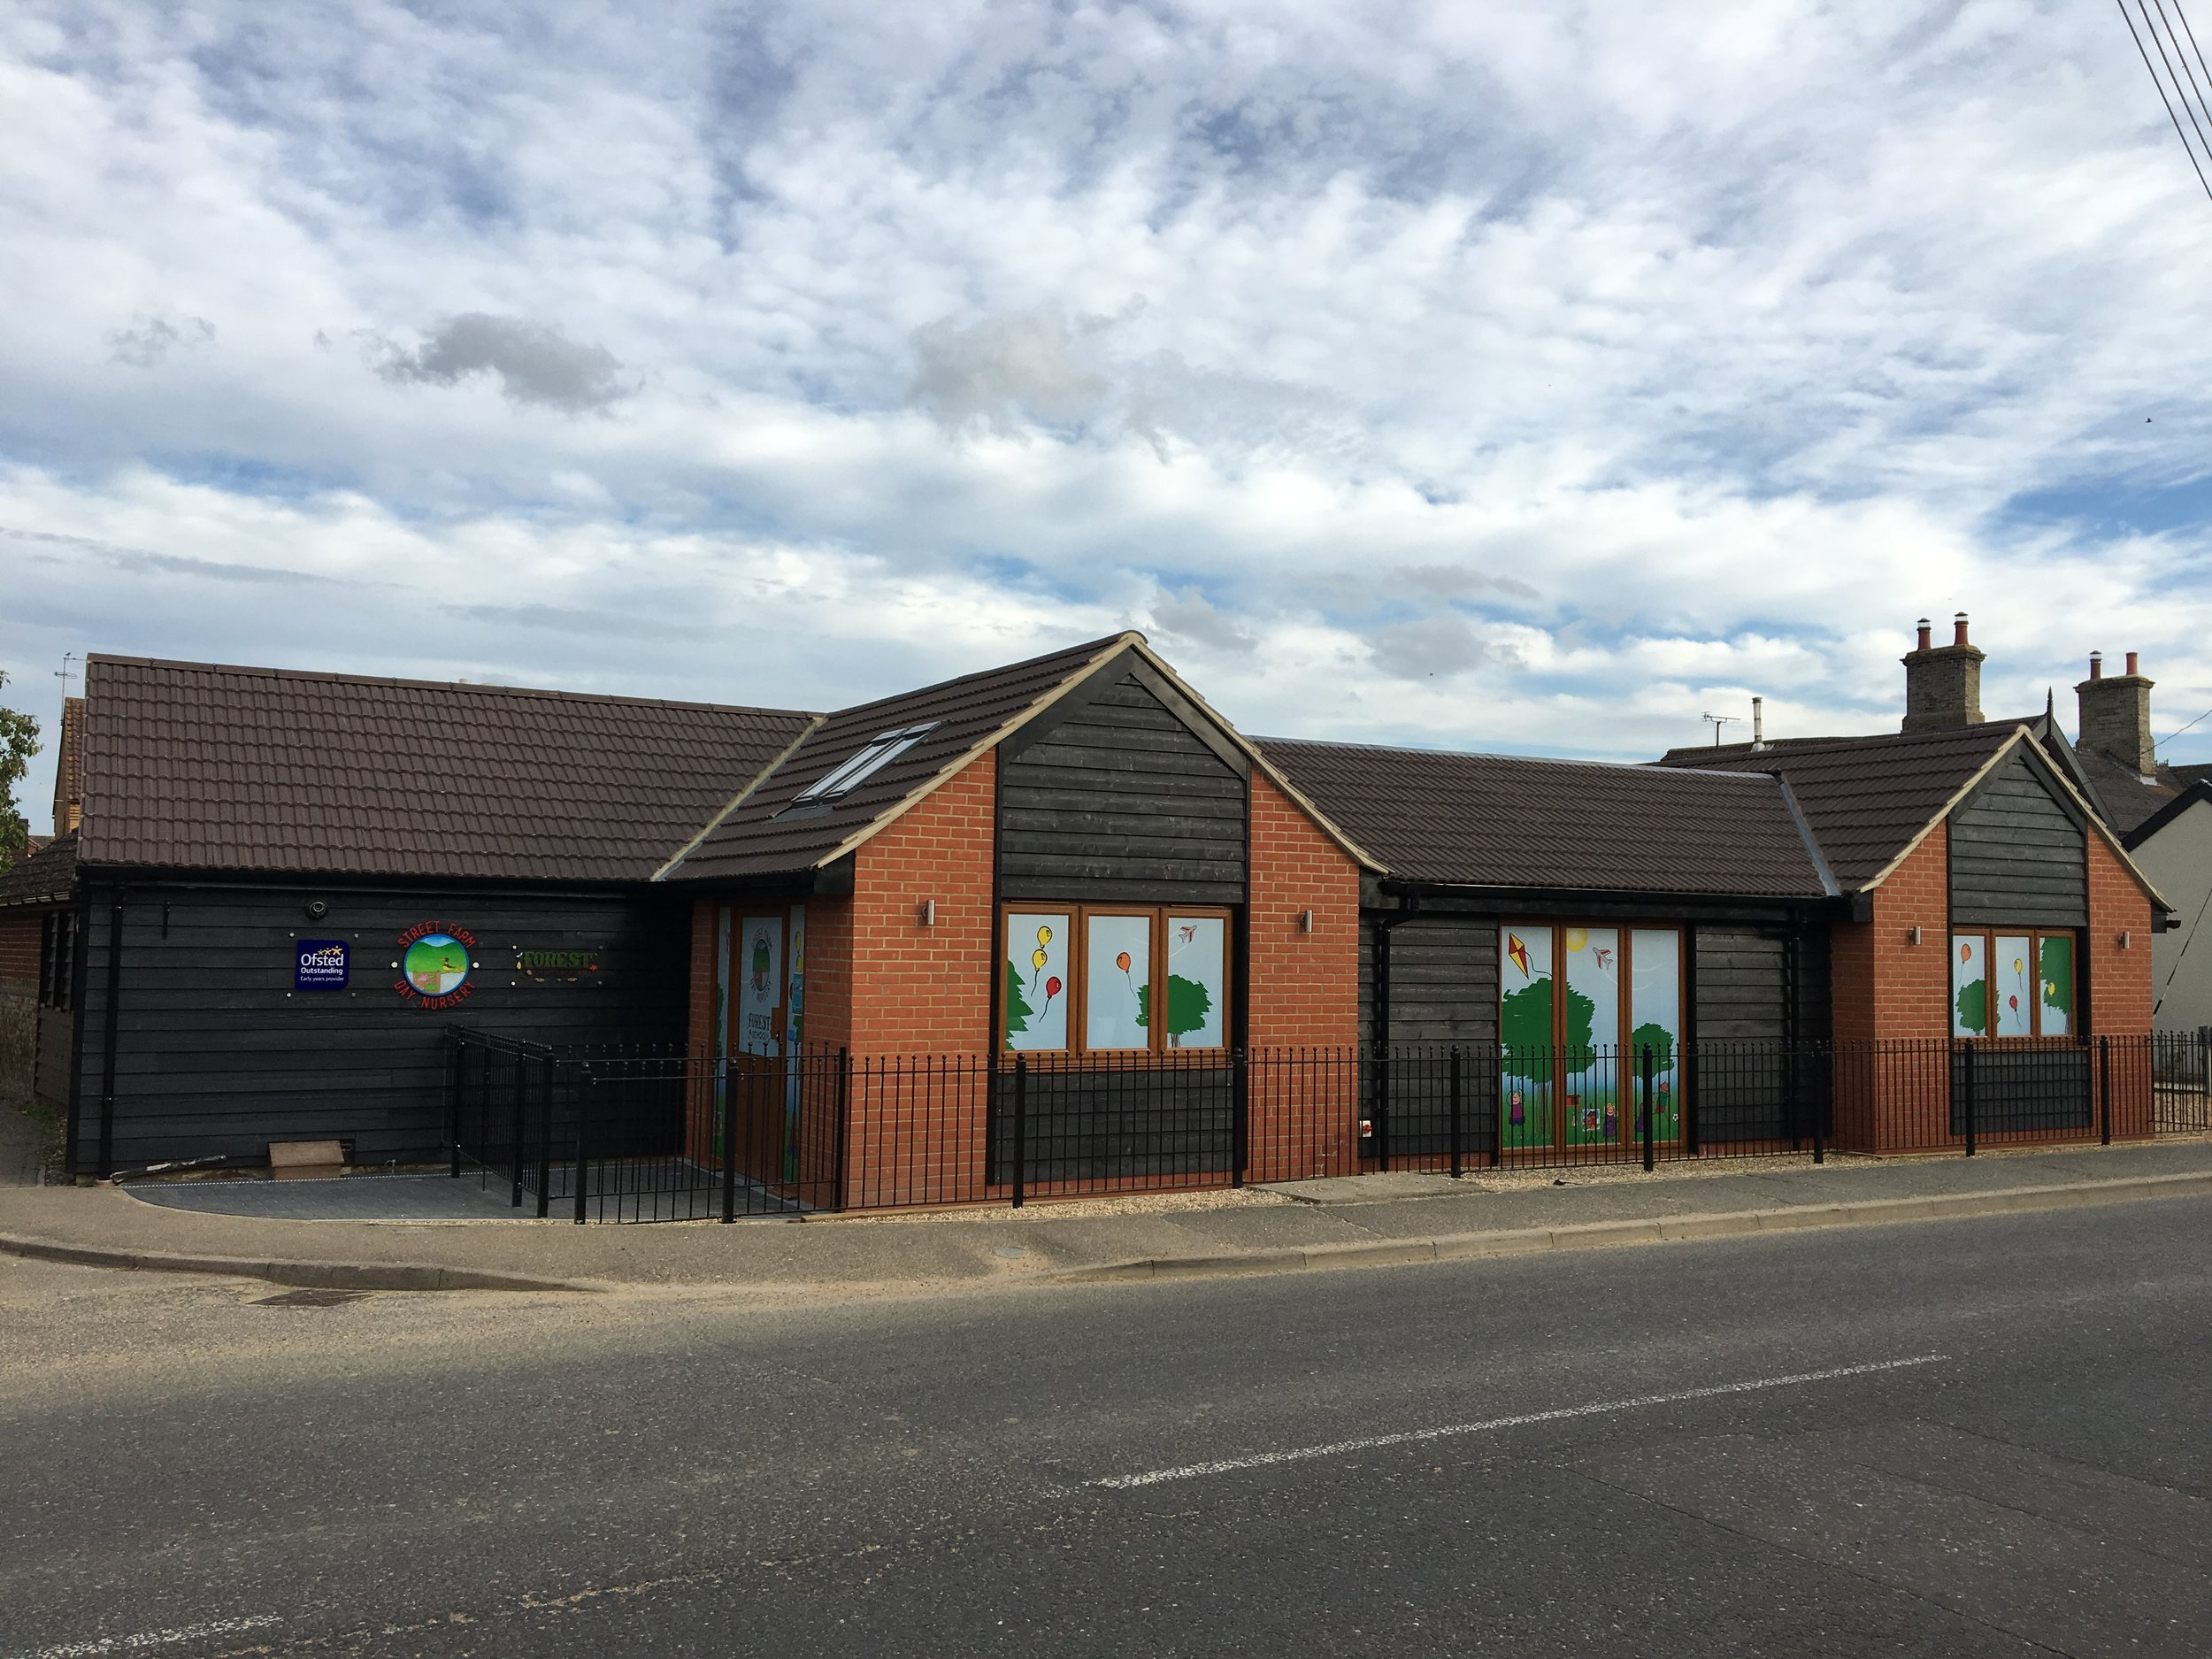 Patrick Allen & Associates are pleased to announce the projectof a single storey extension at the Street Farm Day Nursery in Elmswell has been successfully completed.